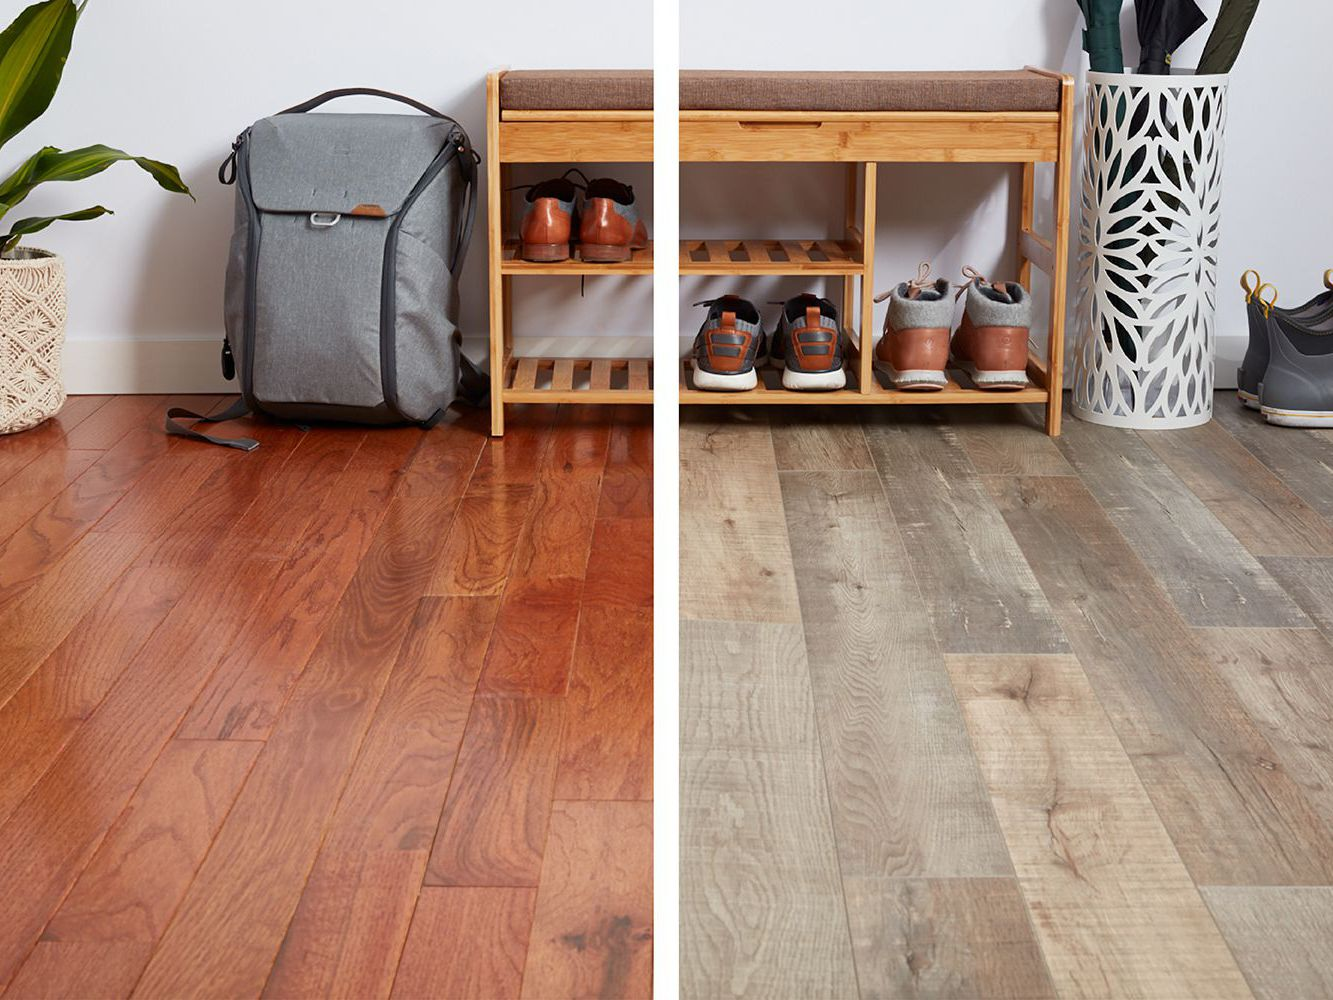 Laminate vs. Solid Hardwood Flooring: Which Is Better?